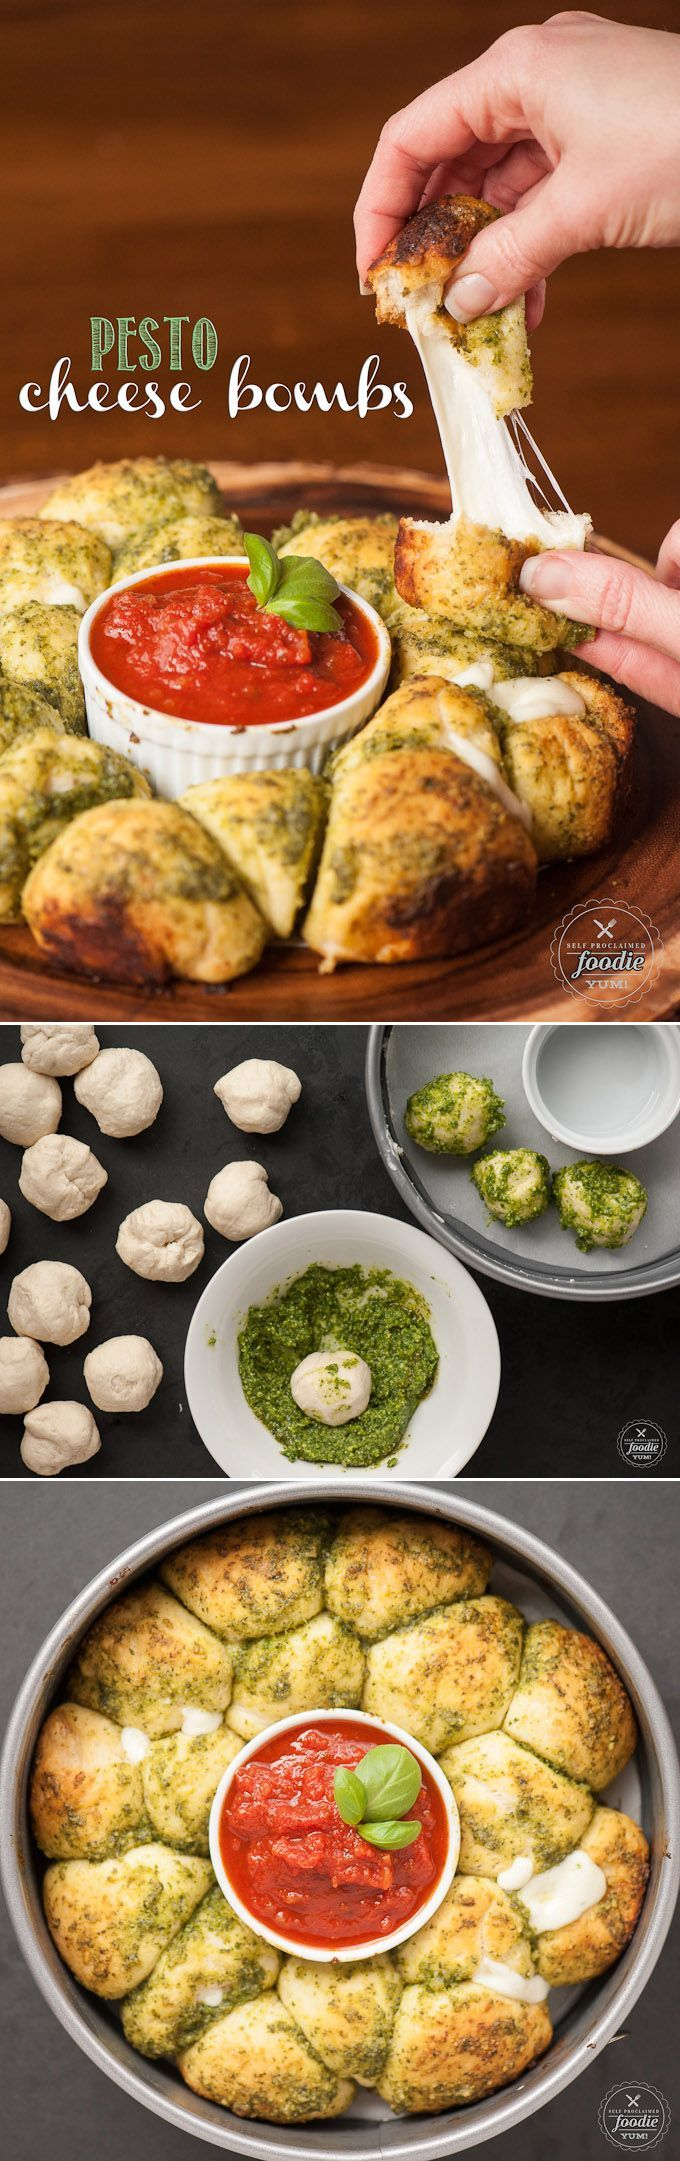 Ooey gooey melty Pesto Cheese Bombs with marinara sauce are super easy to make and will please any crowd. Make this appetizer for your next game day party!(Summer Bake Vegan)